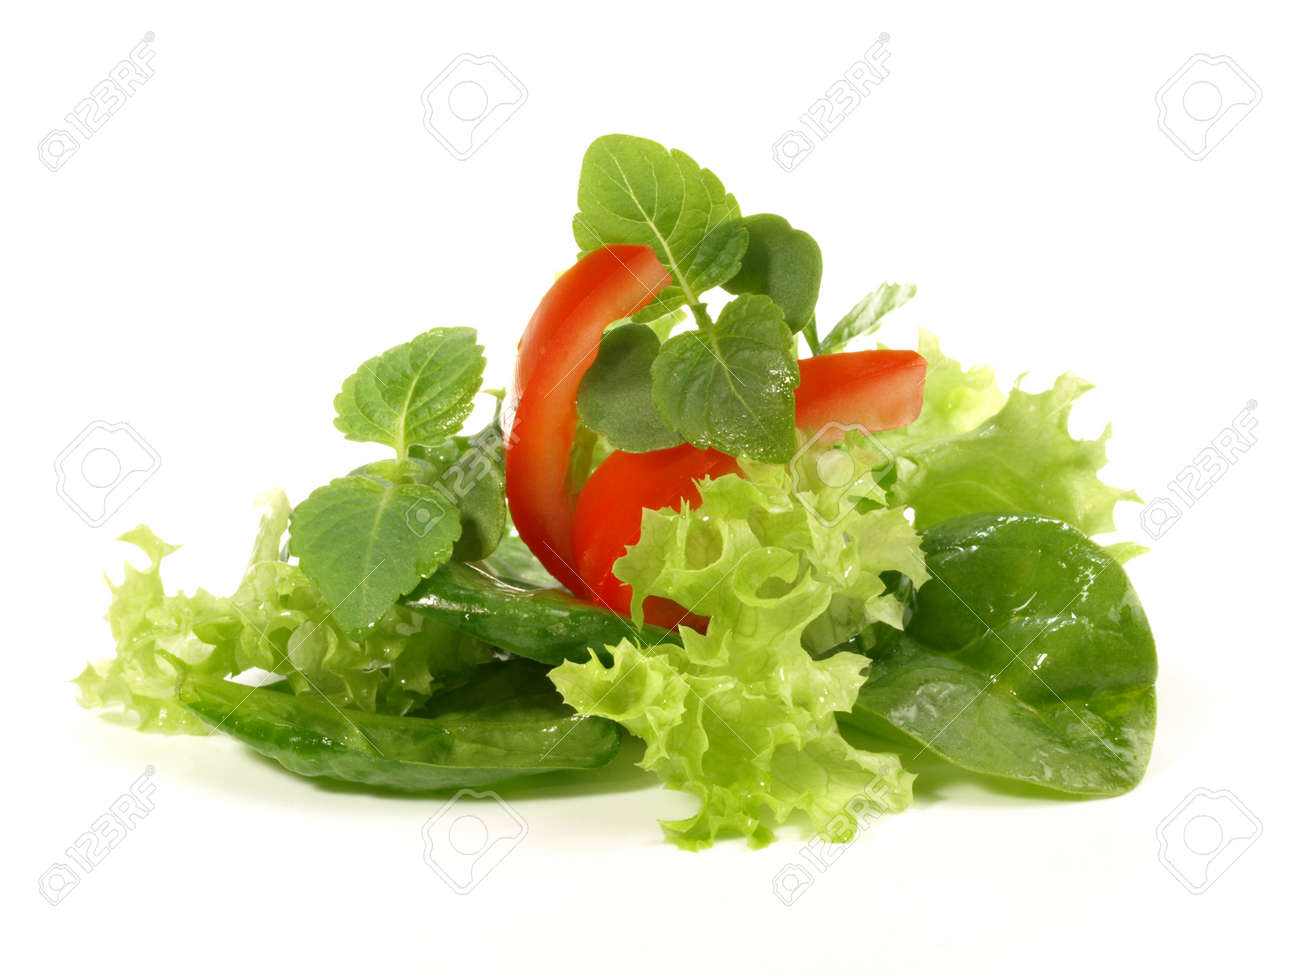 Mixed salad bouquet isolated on white background - 165230766